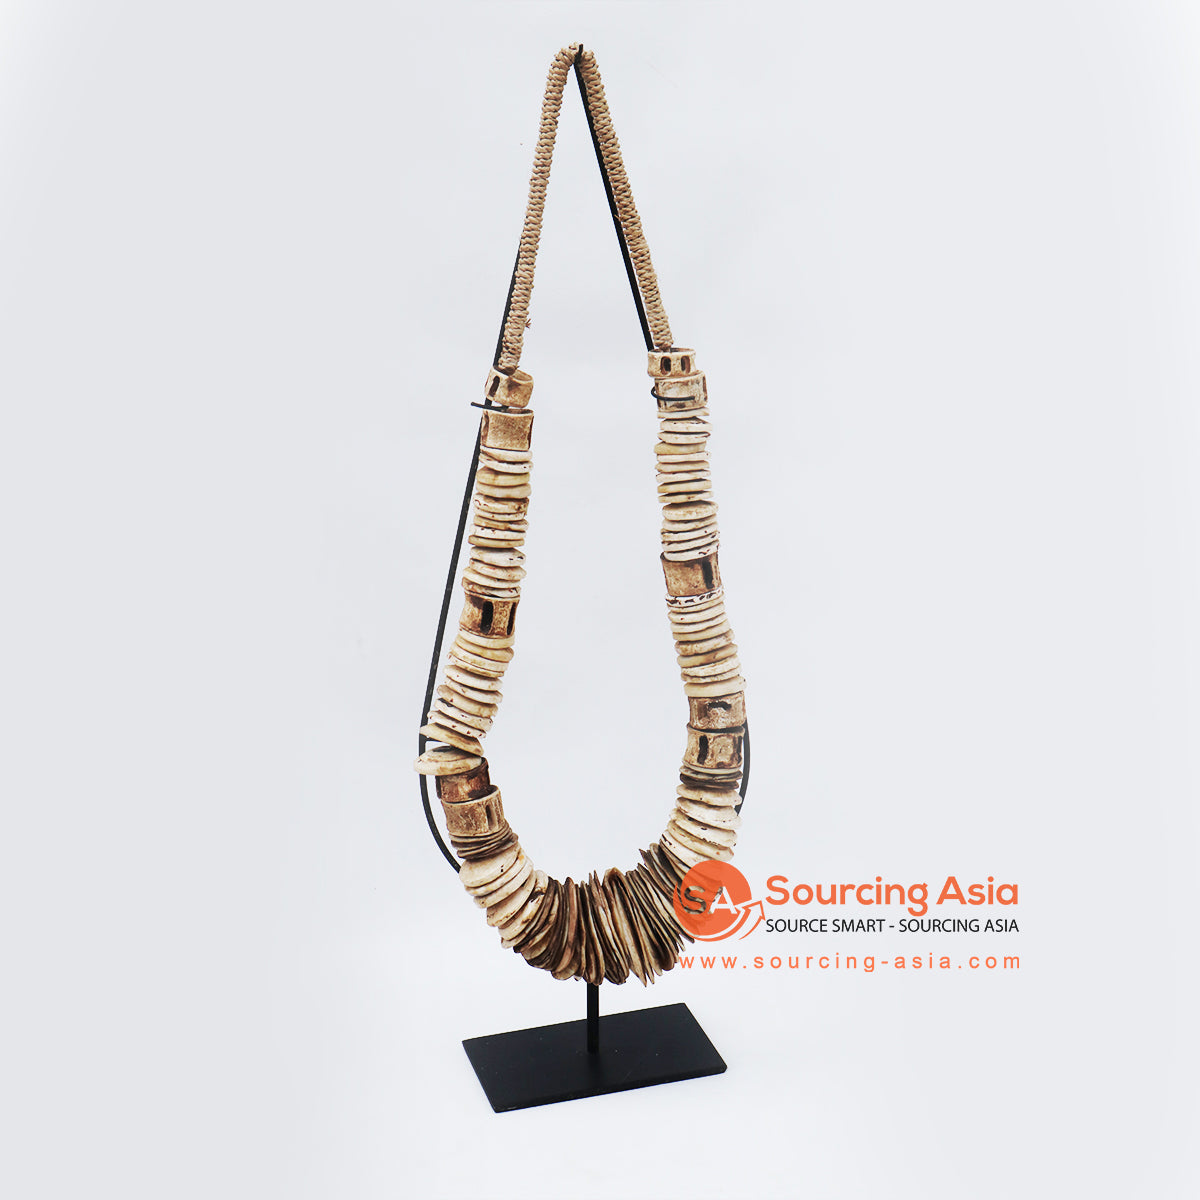 KNTC077 PAPUA SHELL NECKLACE ON STAND